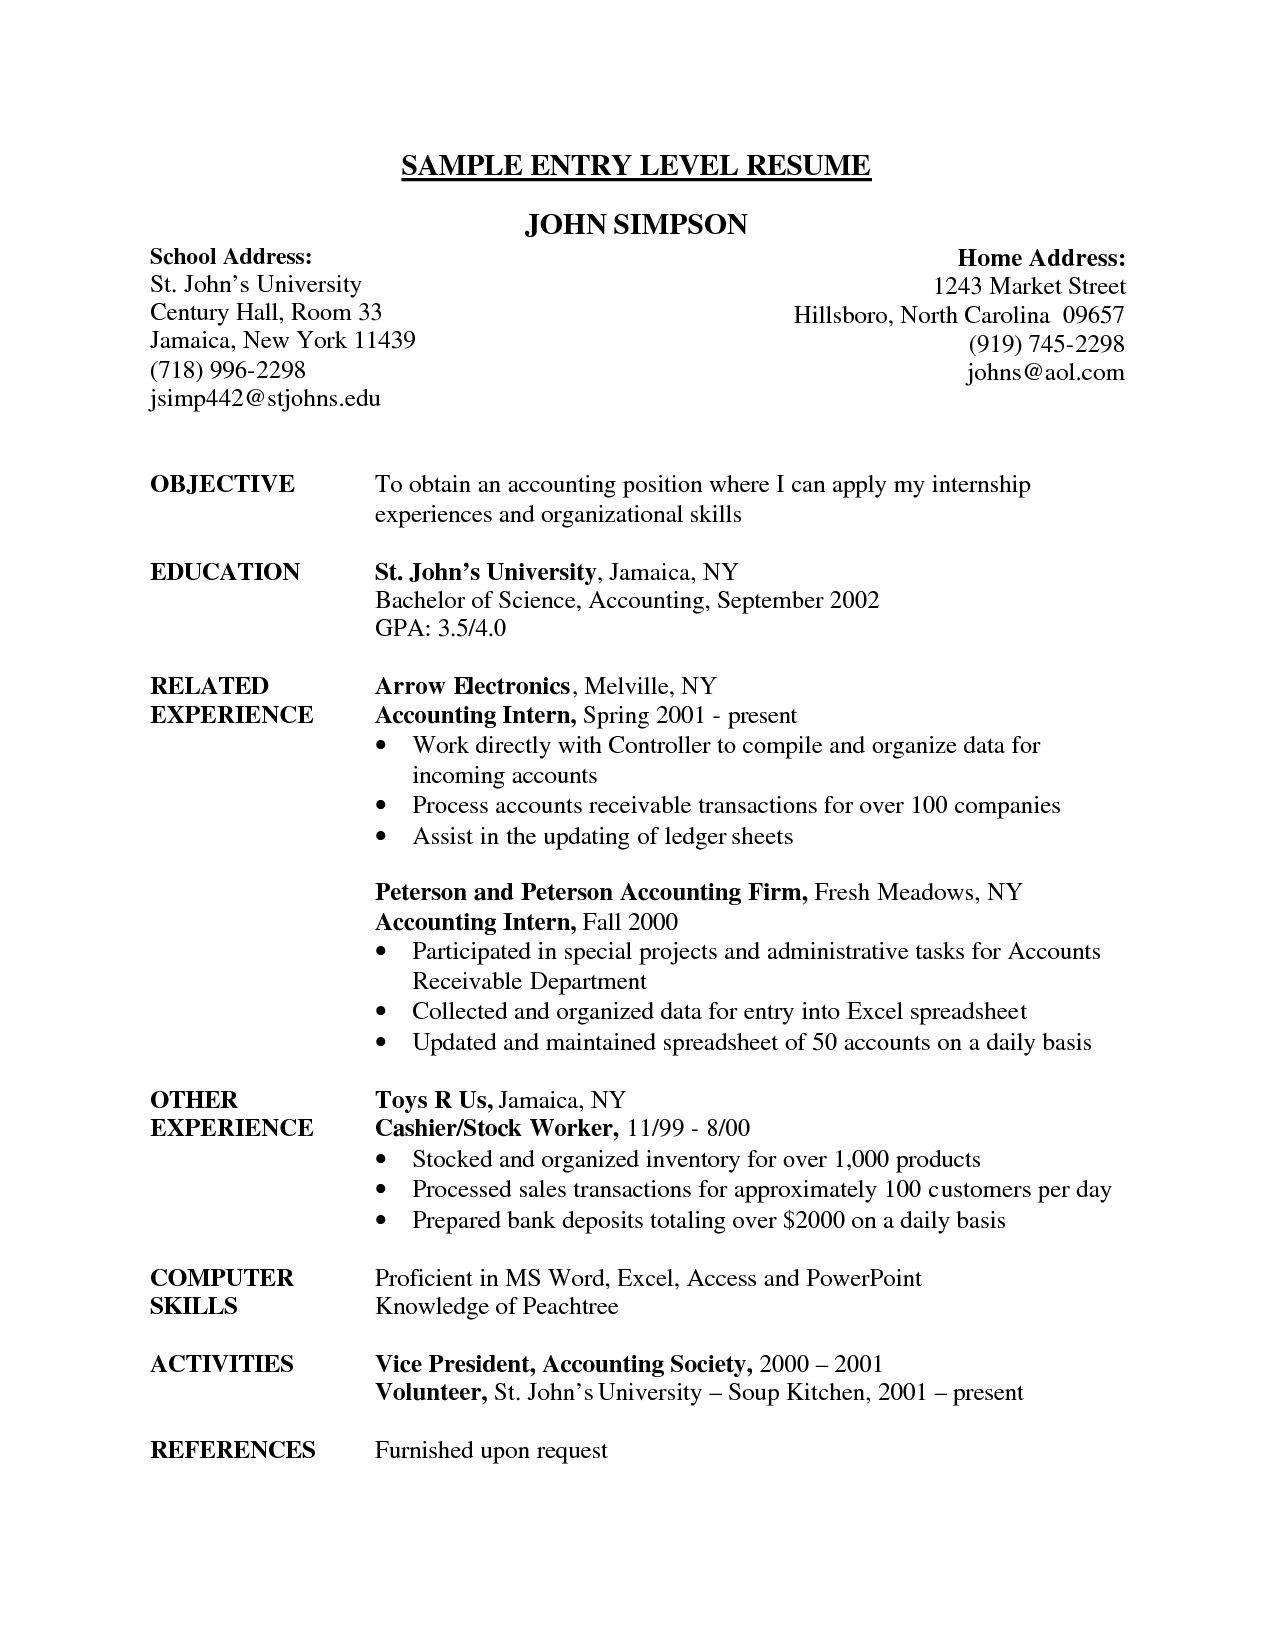 resume Resume Examples Entry Level entry level resume example job examples 26161fd4f